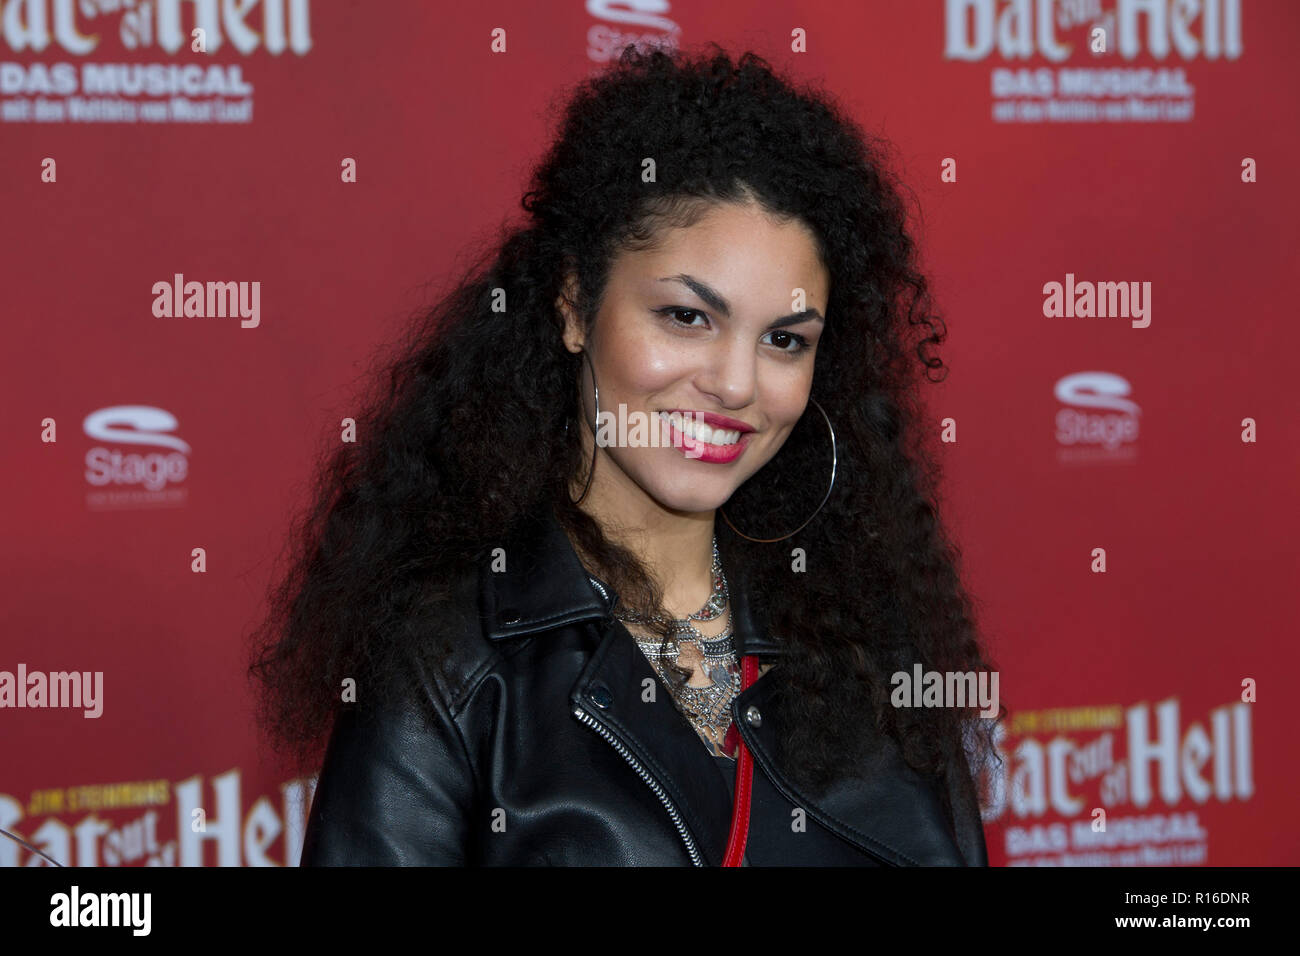 Julianna TOWNSEND, Model, Red Carpet, Red Carpet Show, Germany premiere of the musical 'Bat out of Hell' at the Metronom Theater in Oberhausen, 08.11.2018, | usage worldwide - Stock Image